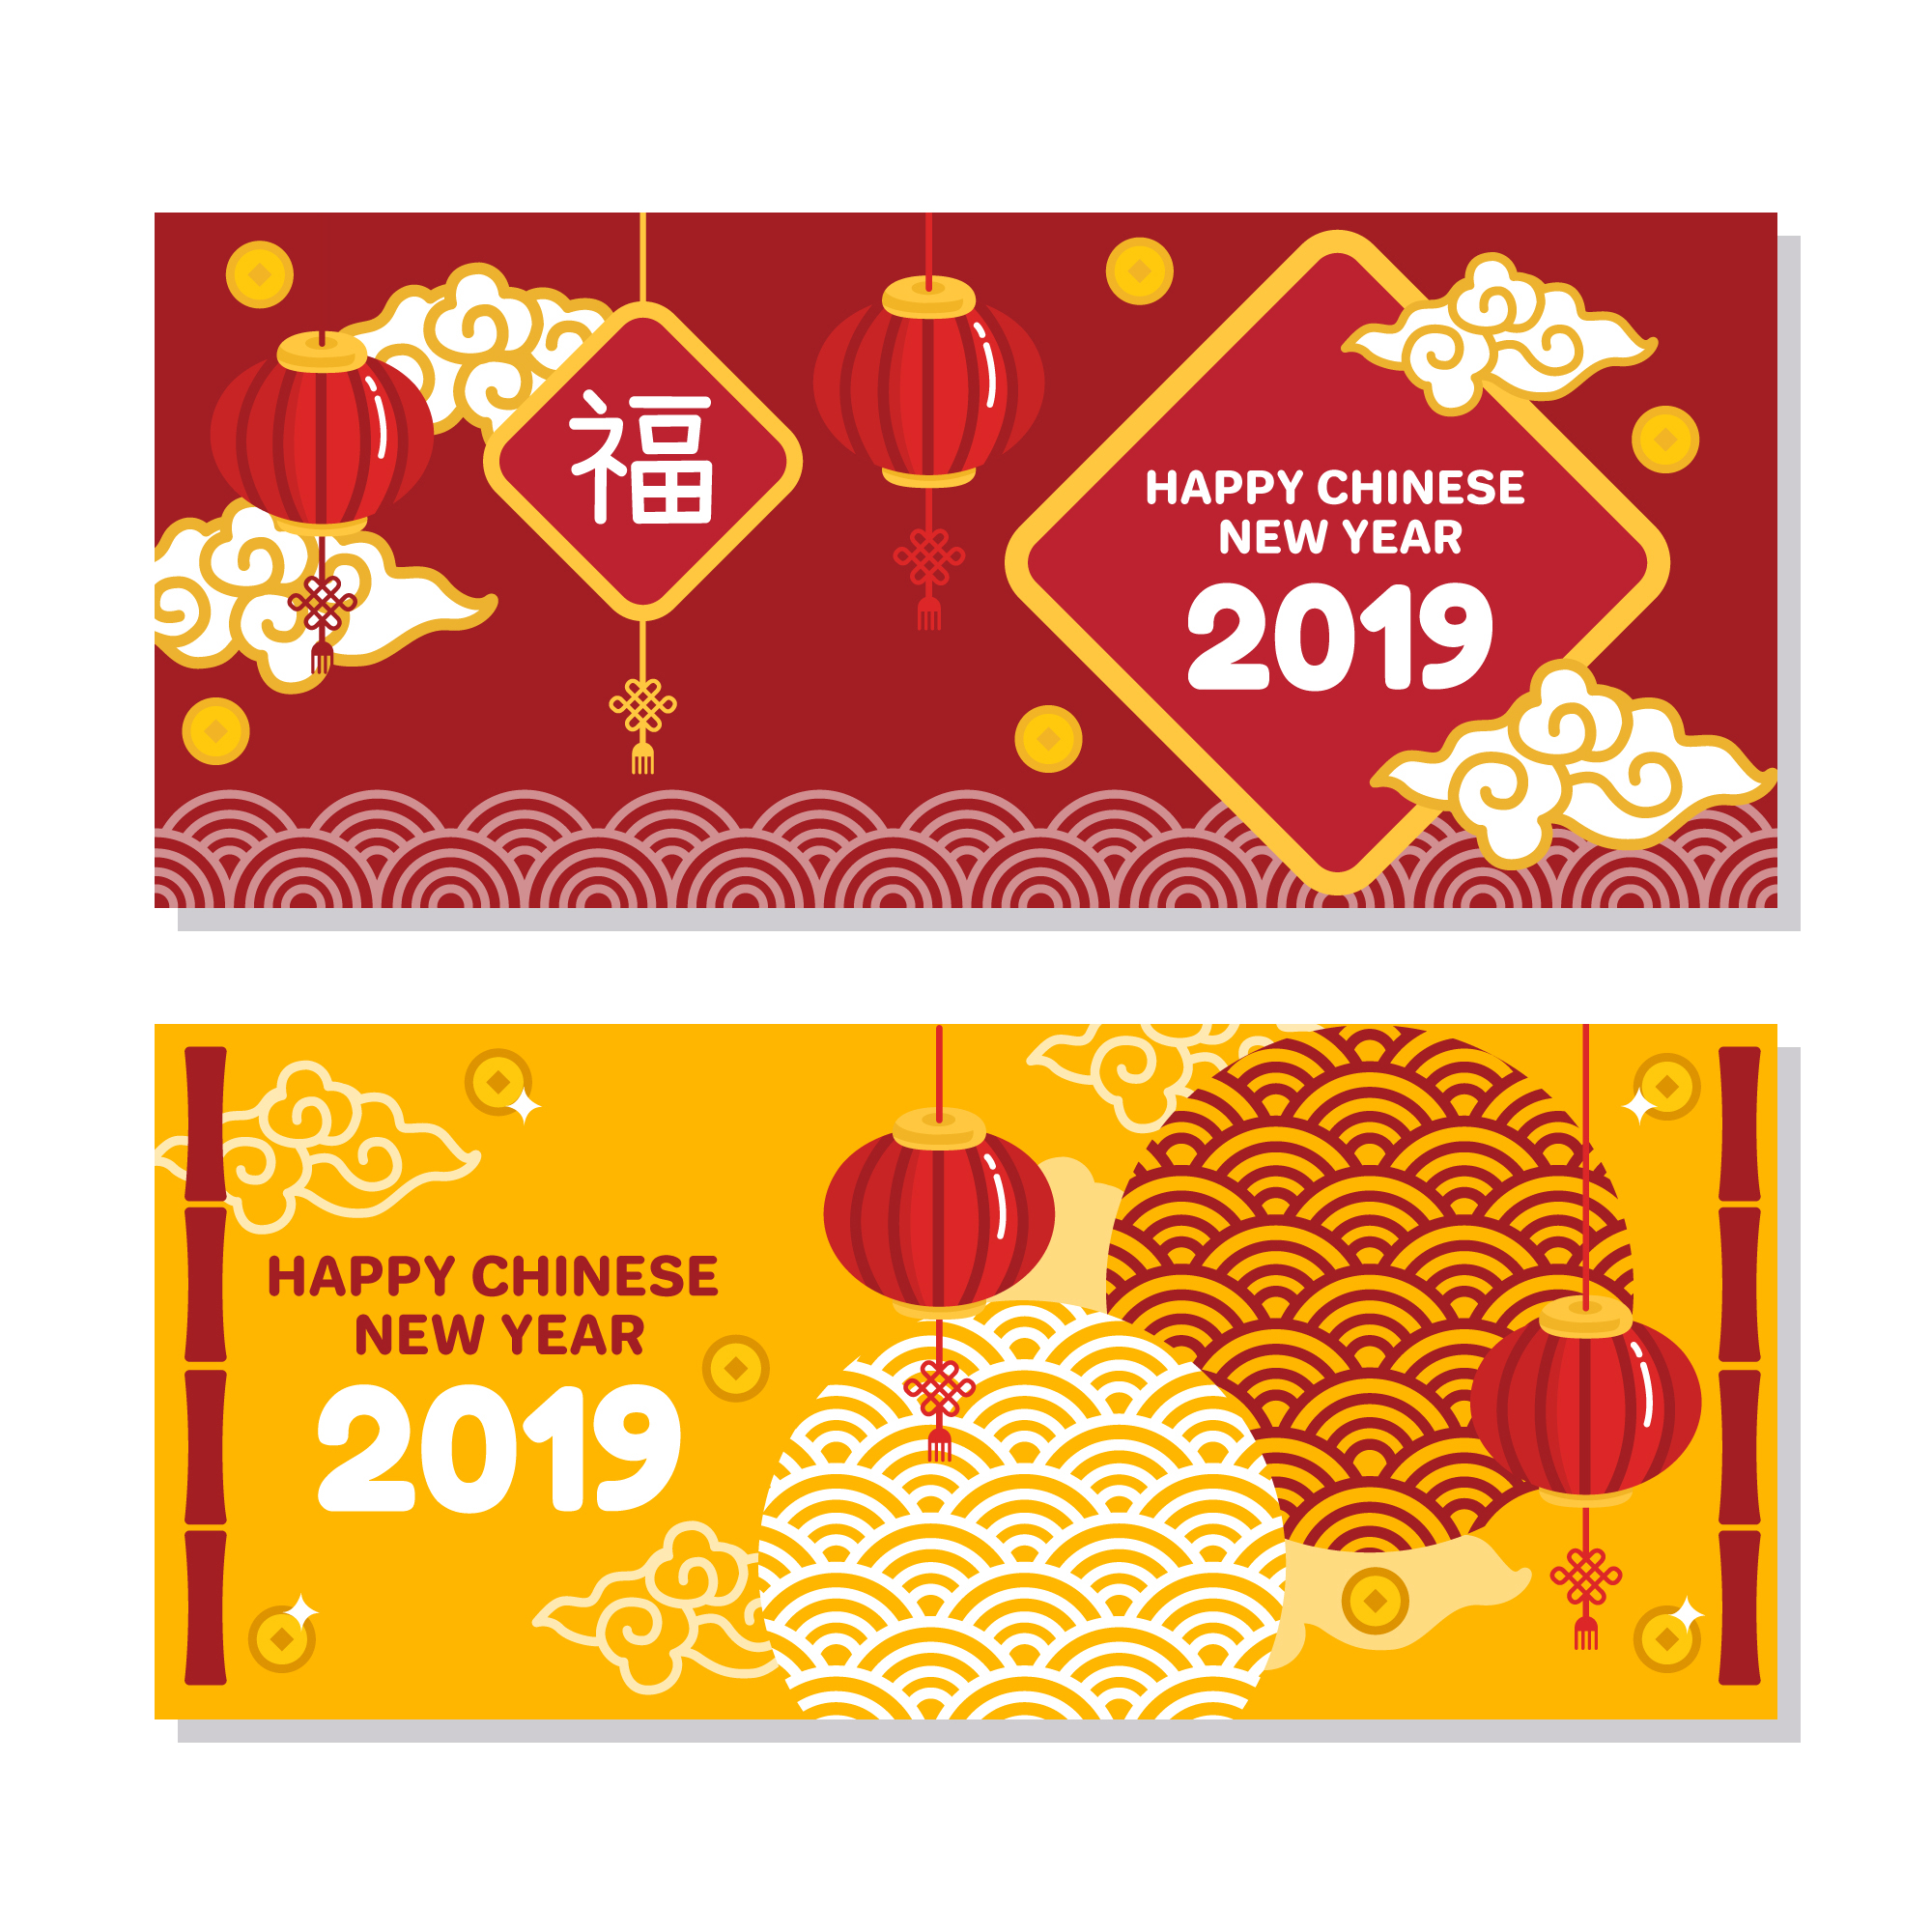 2019新年农历猪年贺卡矢量素材模板 2019 New Year Lunar Year Of The Pig Greeting Card Vector Material Template插图(3)